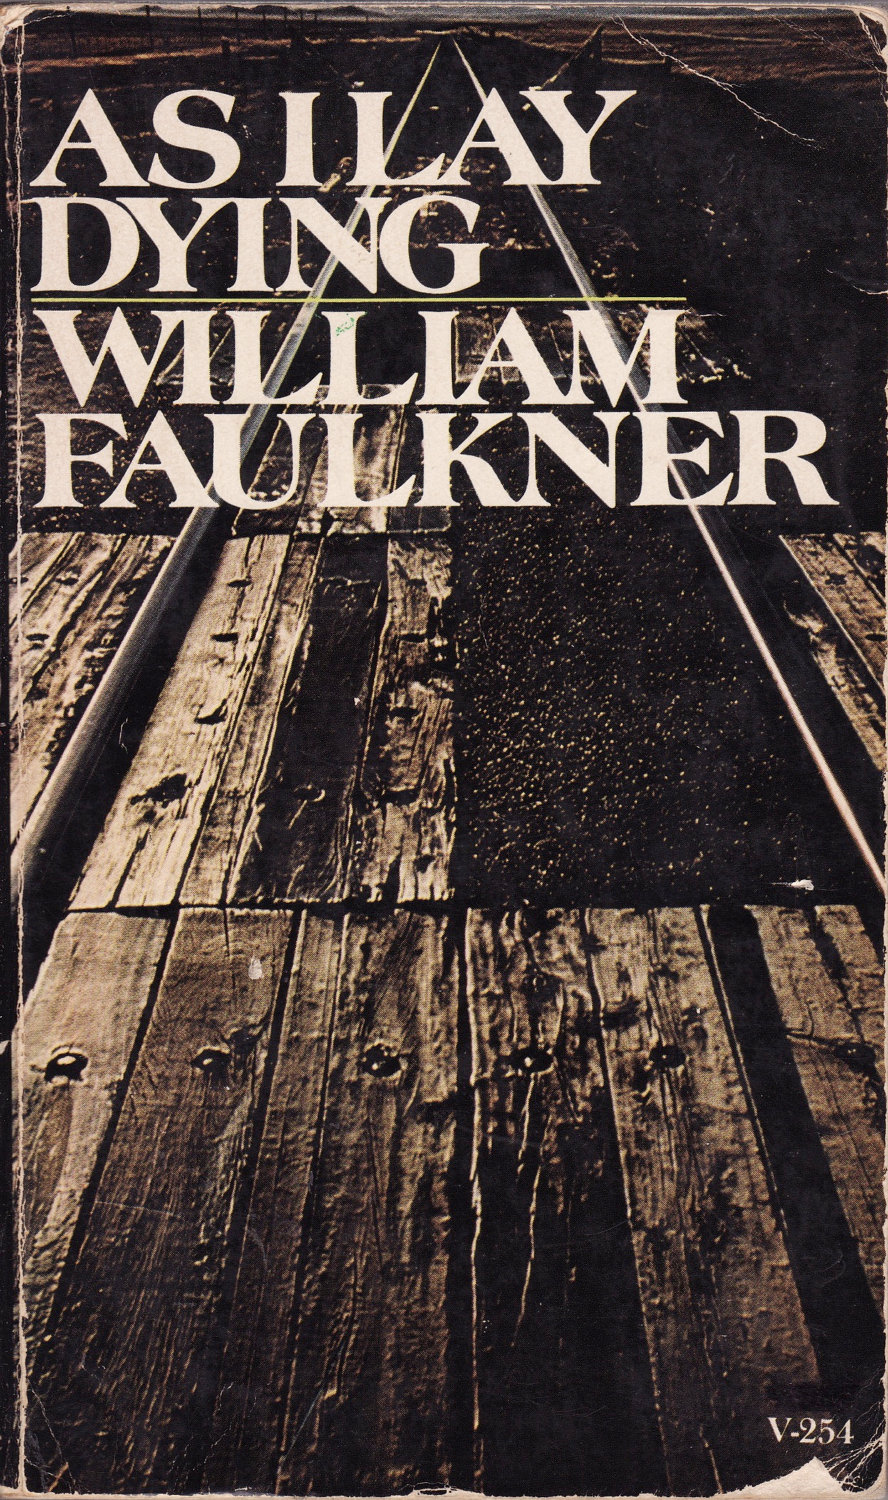 an analysis of the symbolical biography of william faulkner in the novel as i lay dying After the hard work of producing a novel or short story william faulkner's critical reception 53 short biography, the private world of william faulkner.